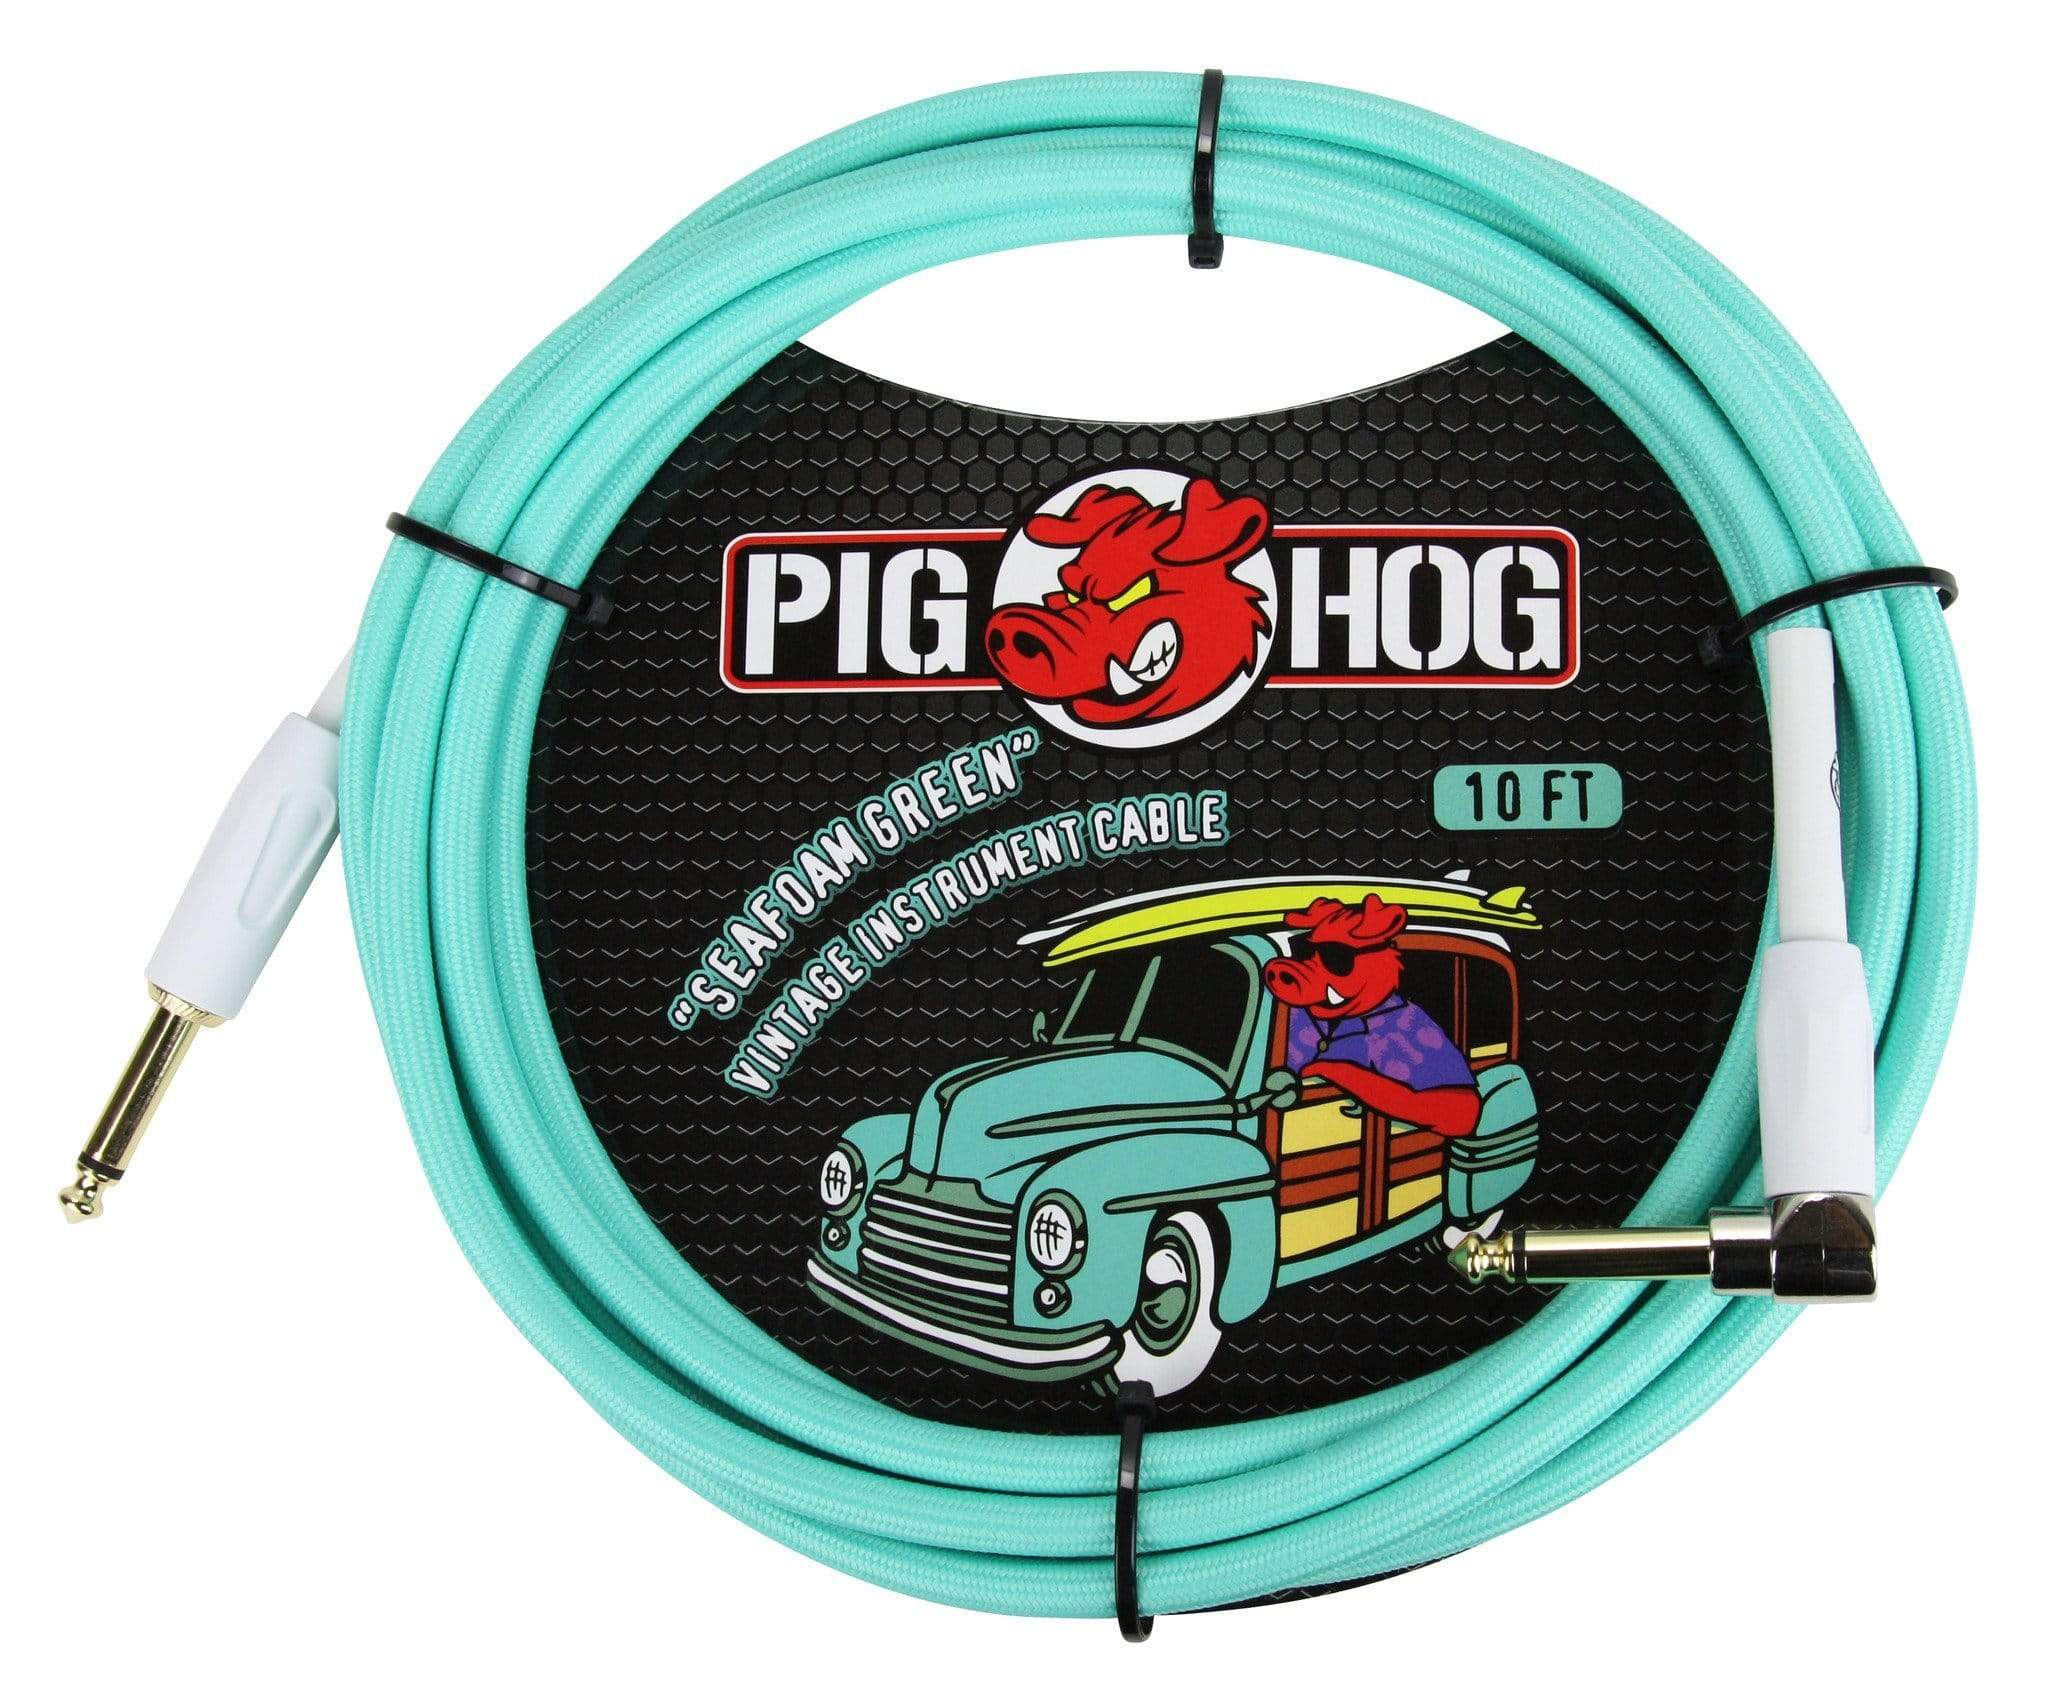 "PIG HOG GUITAR INSTRUMENT CABLES Pig Hog 1/4"" Seafoam Green Guitar Instrument Cable Cord 20ft Right-Angle"